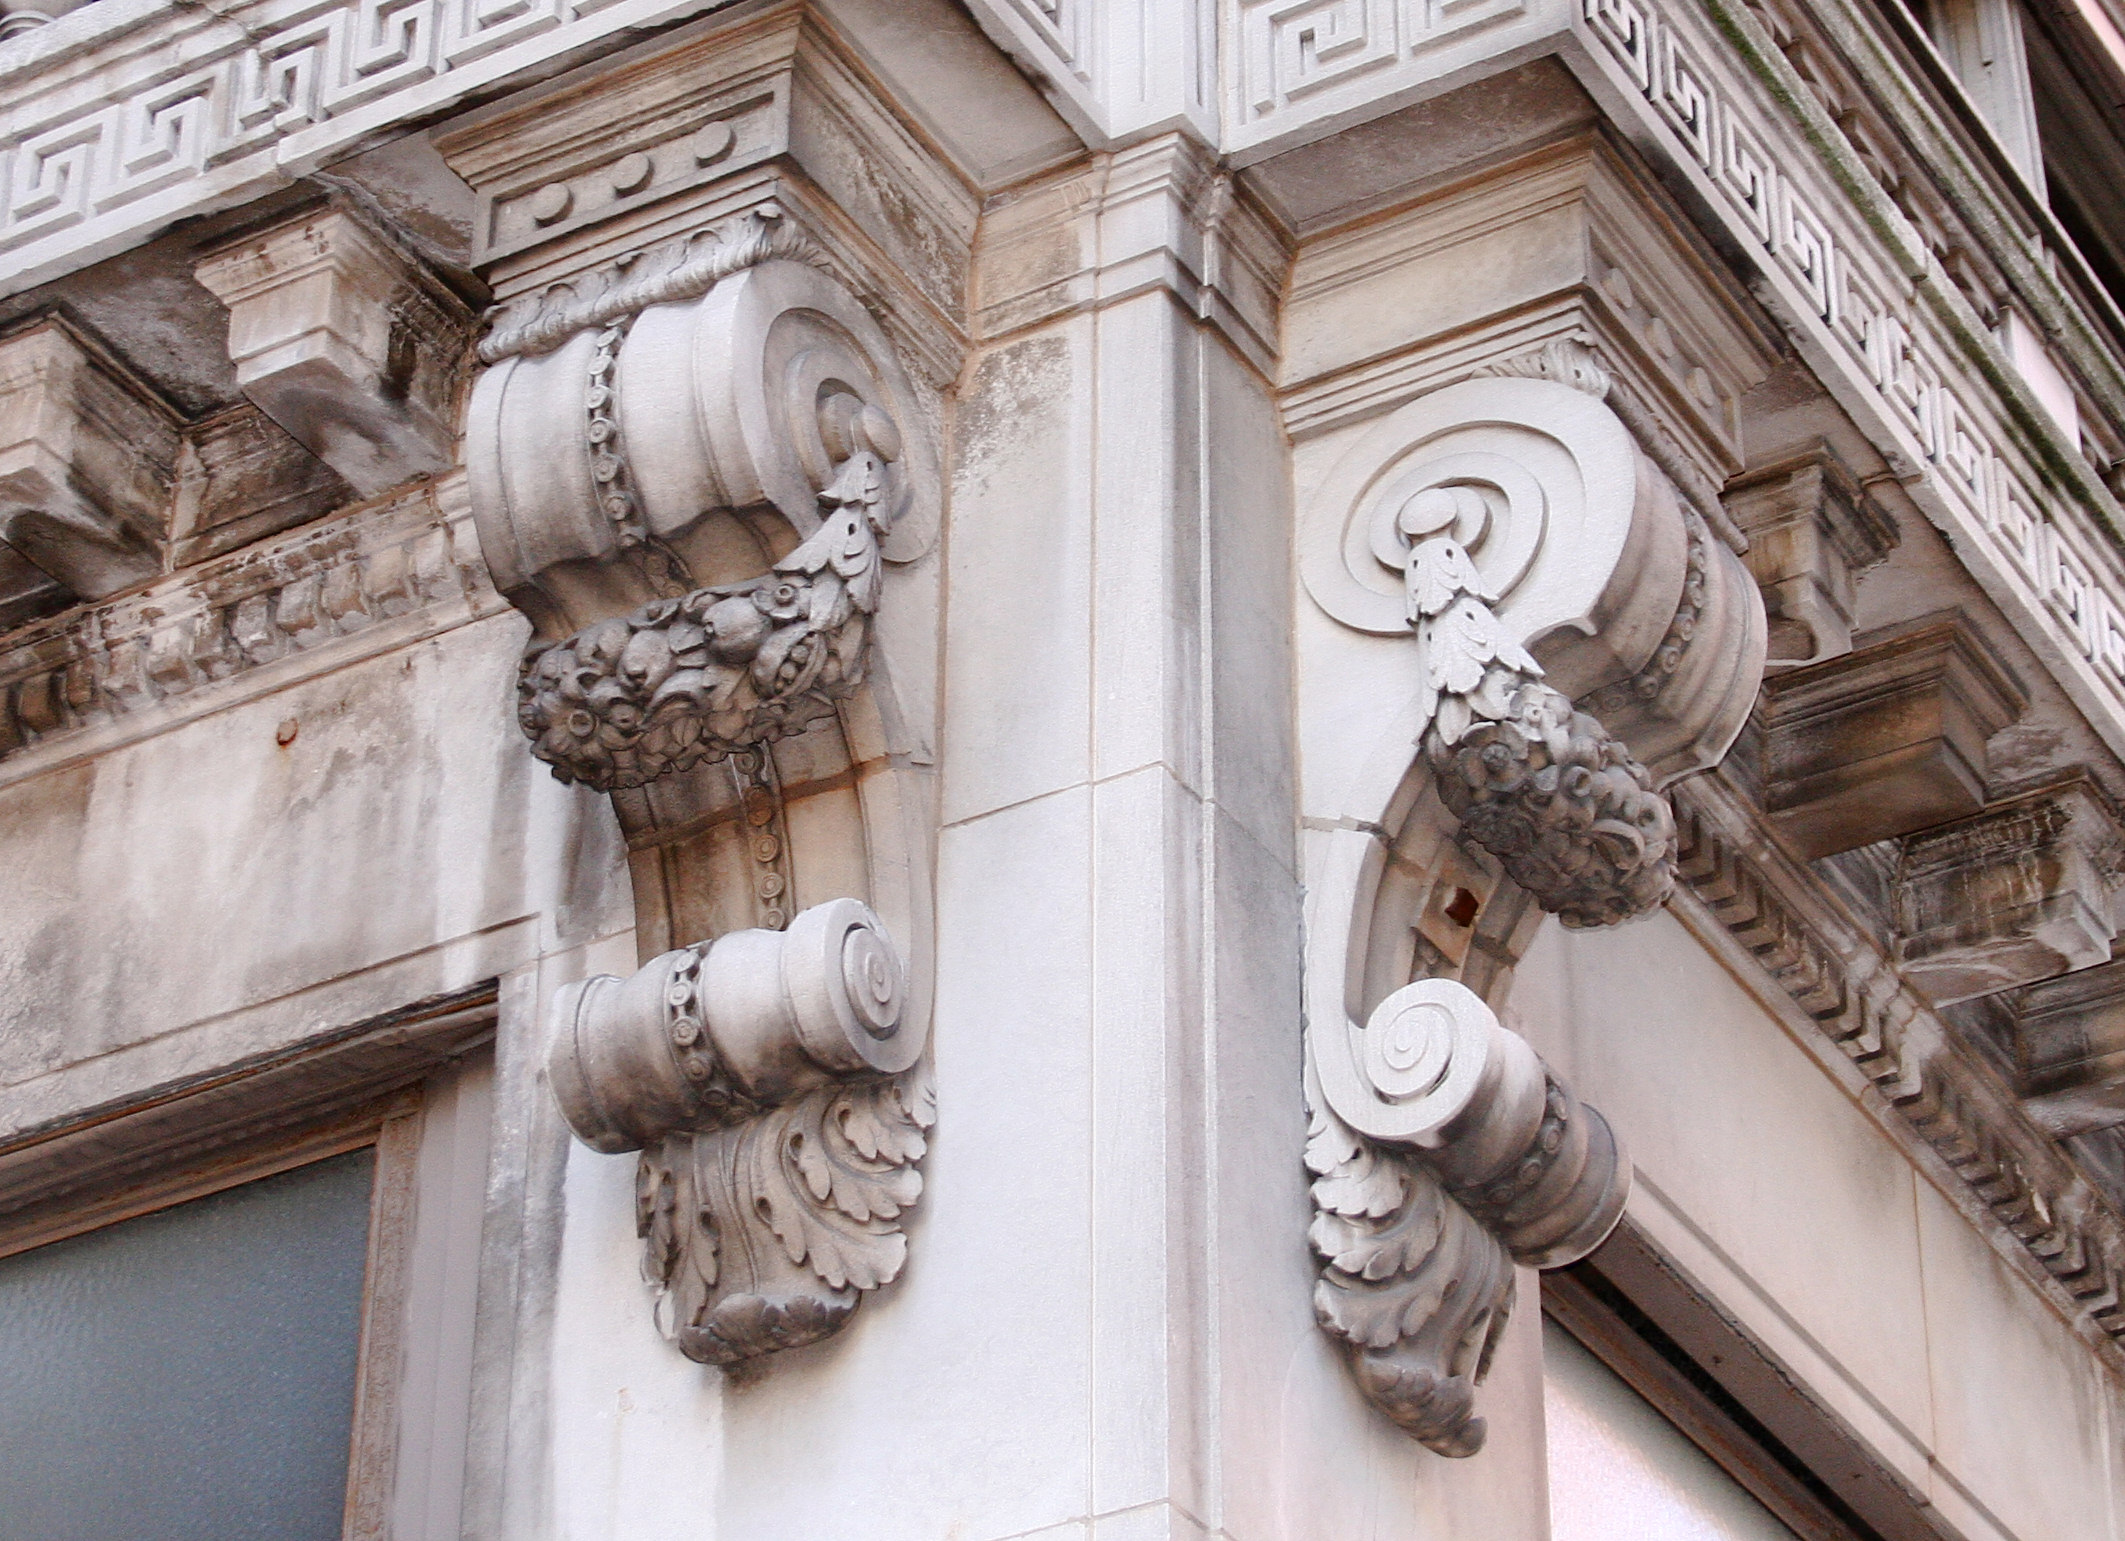 Architecture Design Wiki corbel - designing buildings wiki